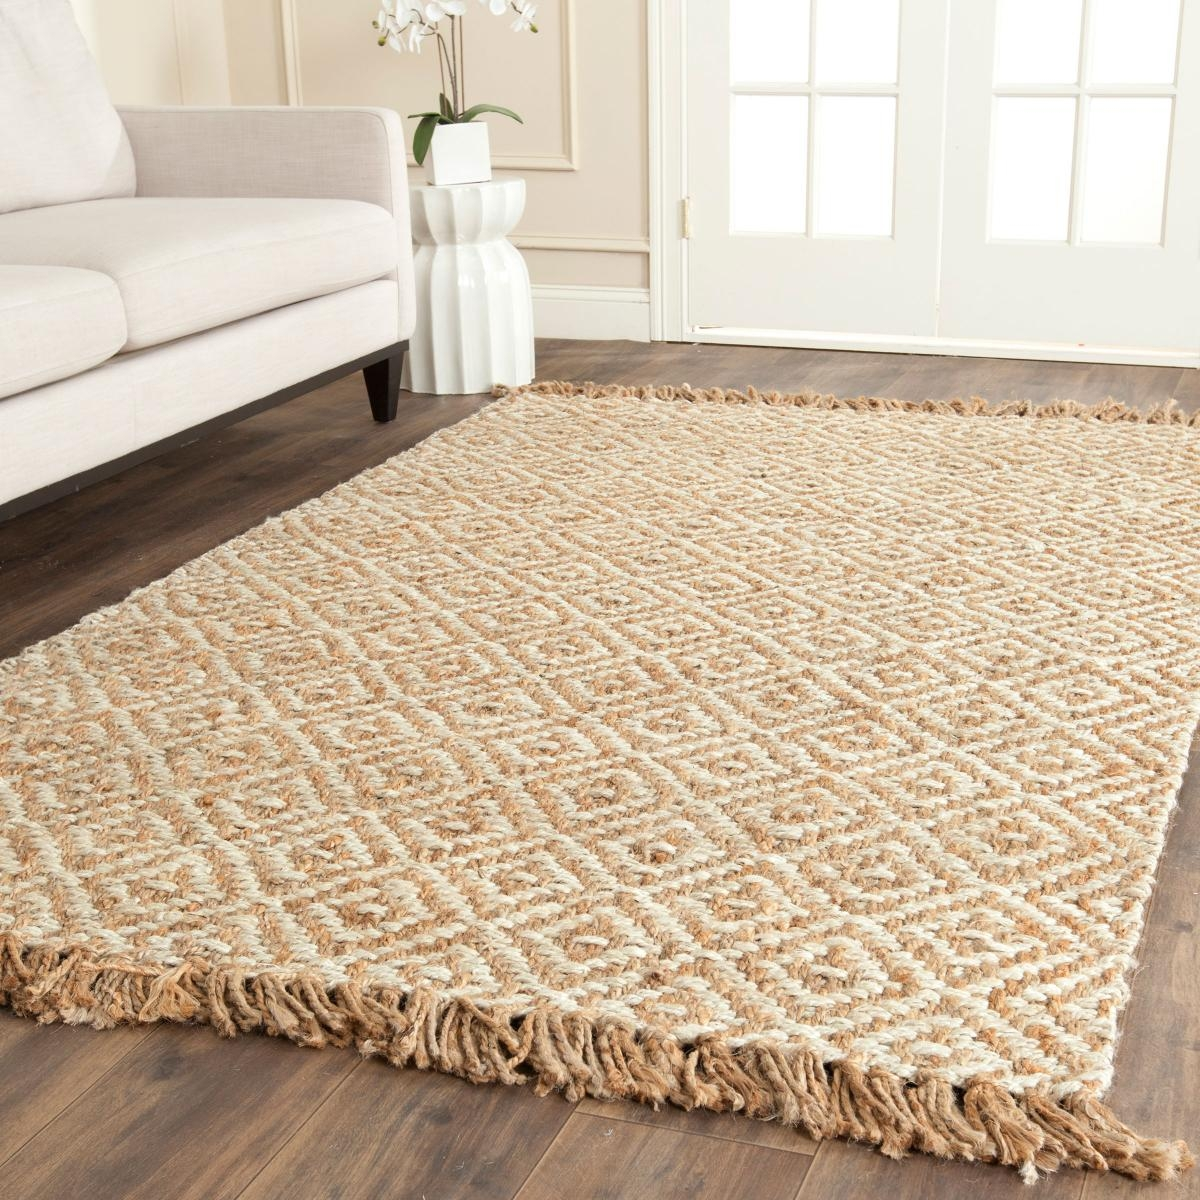 Rug Nf450a Natural Fiber Area Rugs Safavieh Pertaining To Natural Rugs (Image 12 of 15)